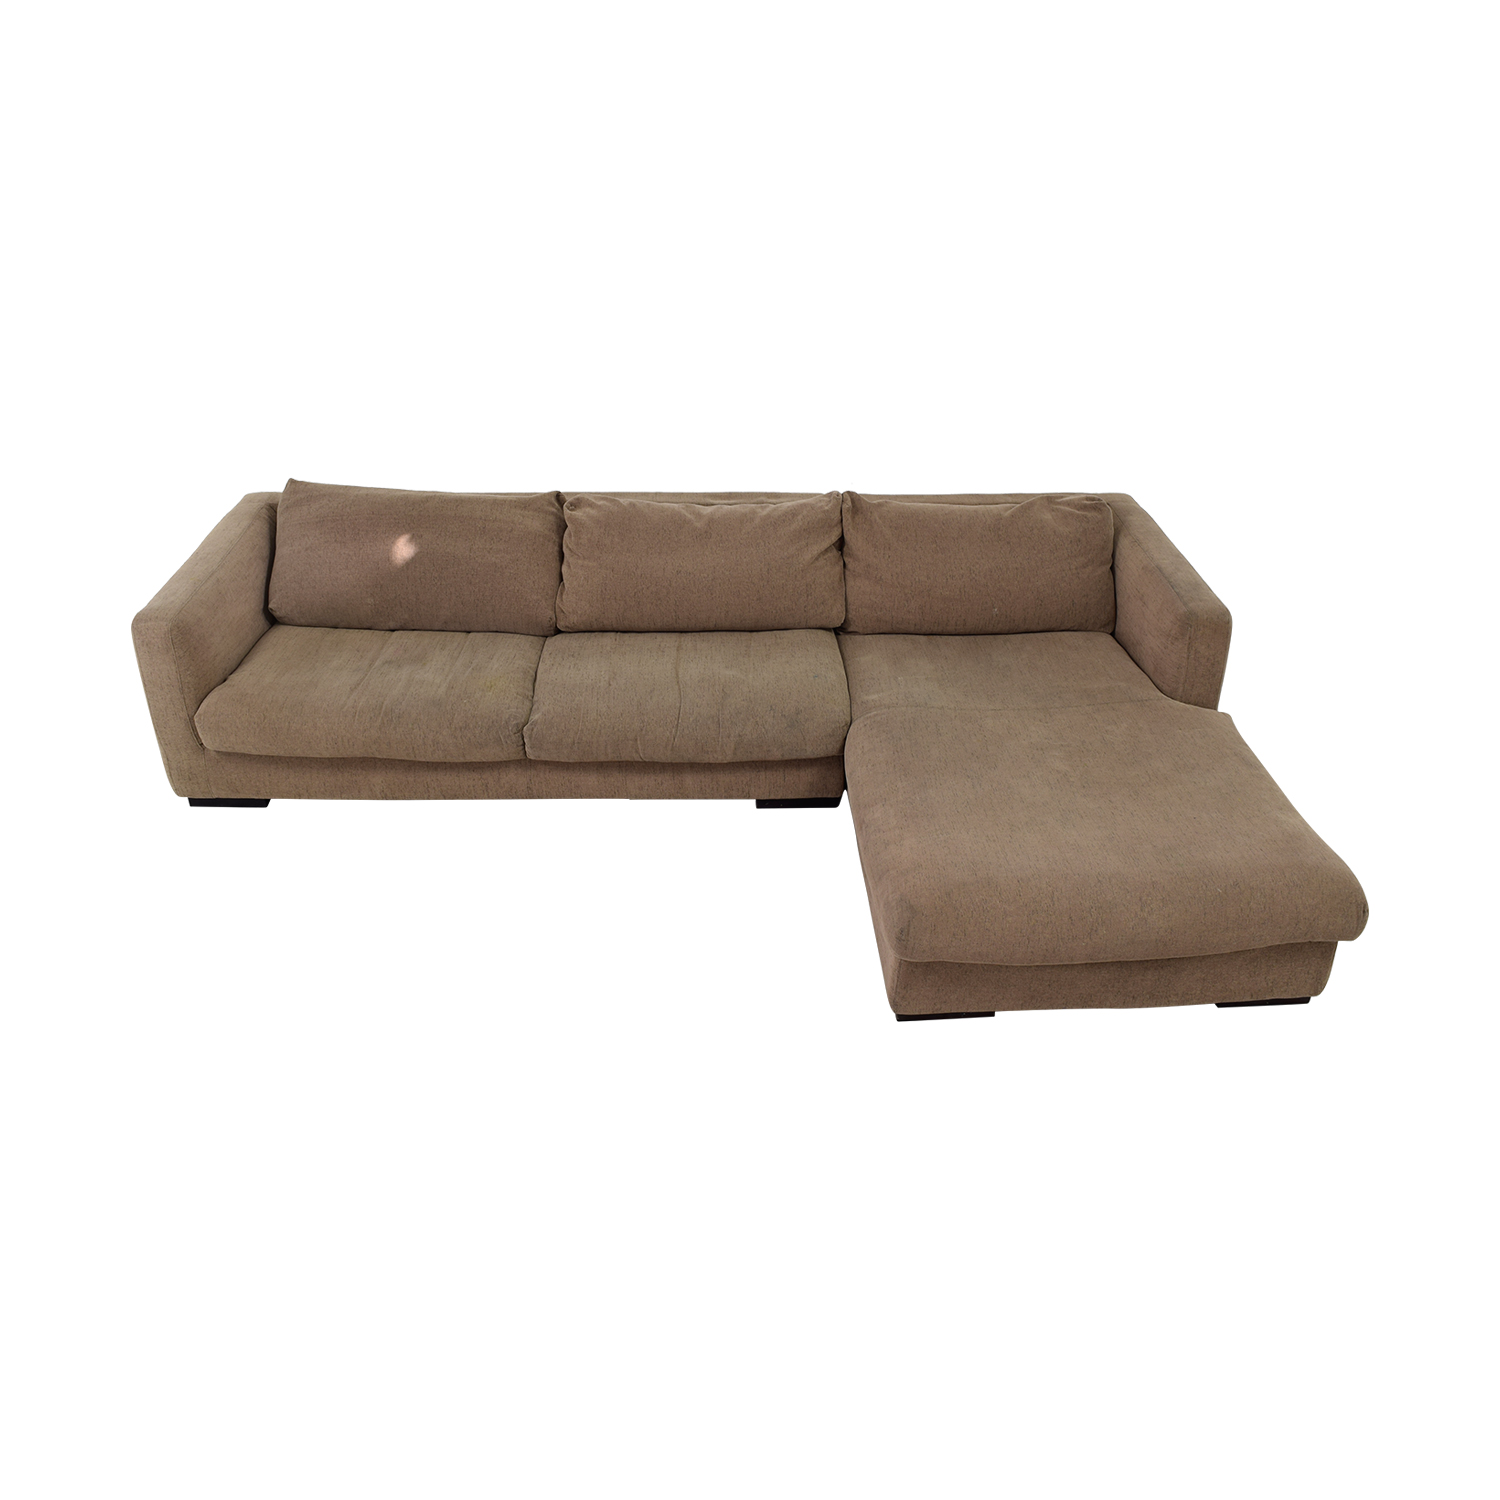 Plummers Furniture Plummers Furniture Tan Down Feather Chaise Sectional second hand